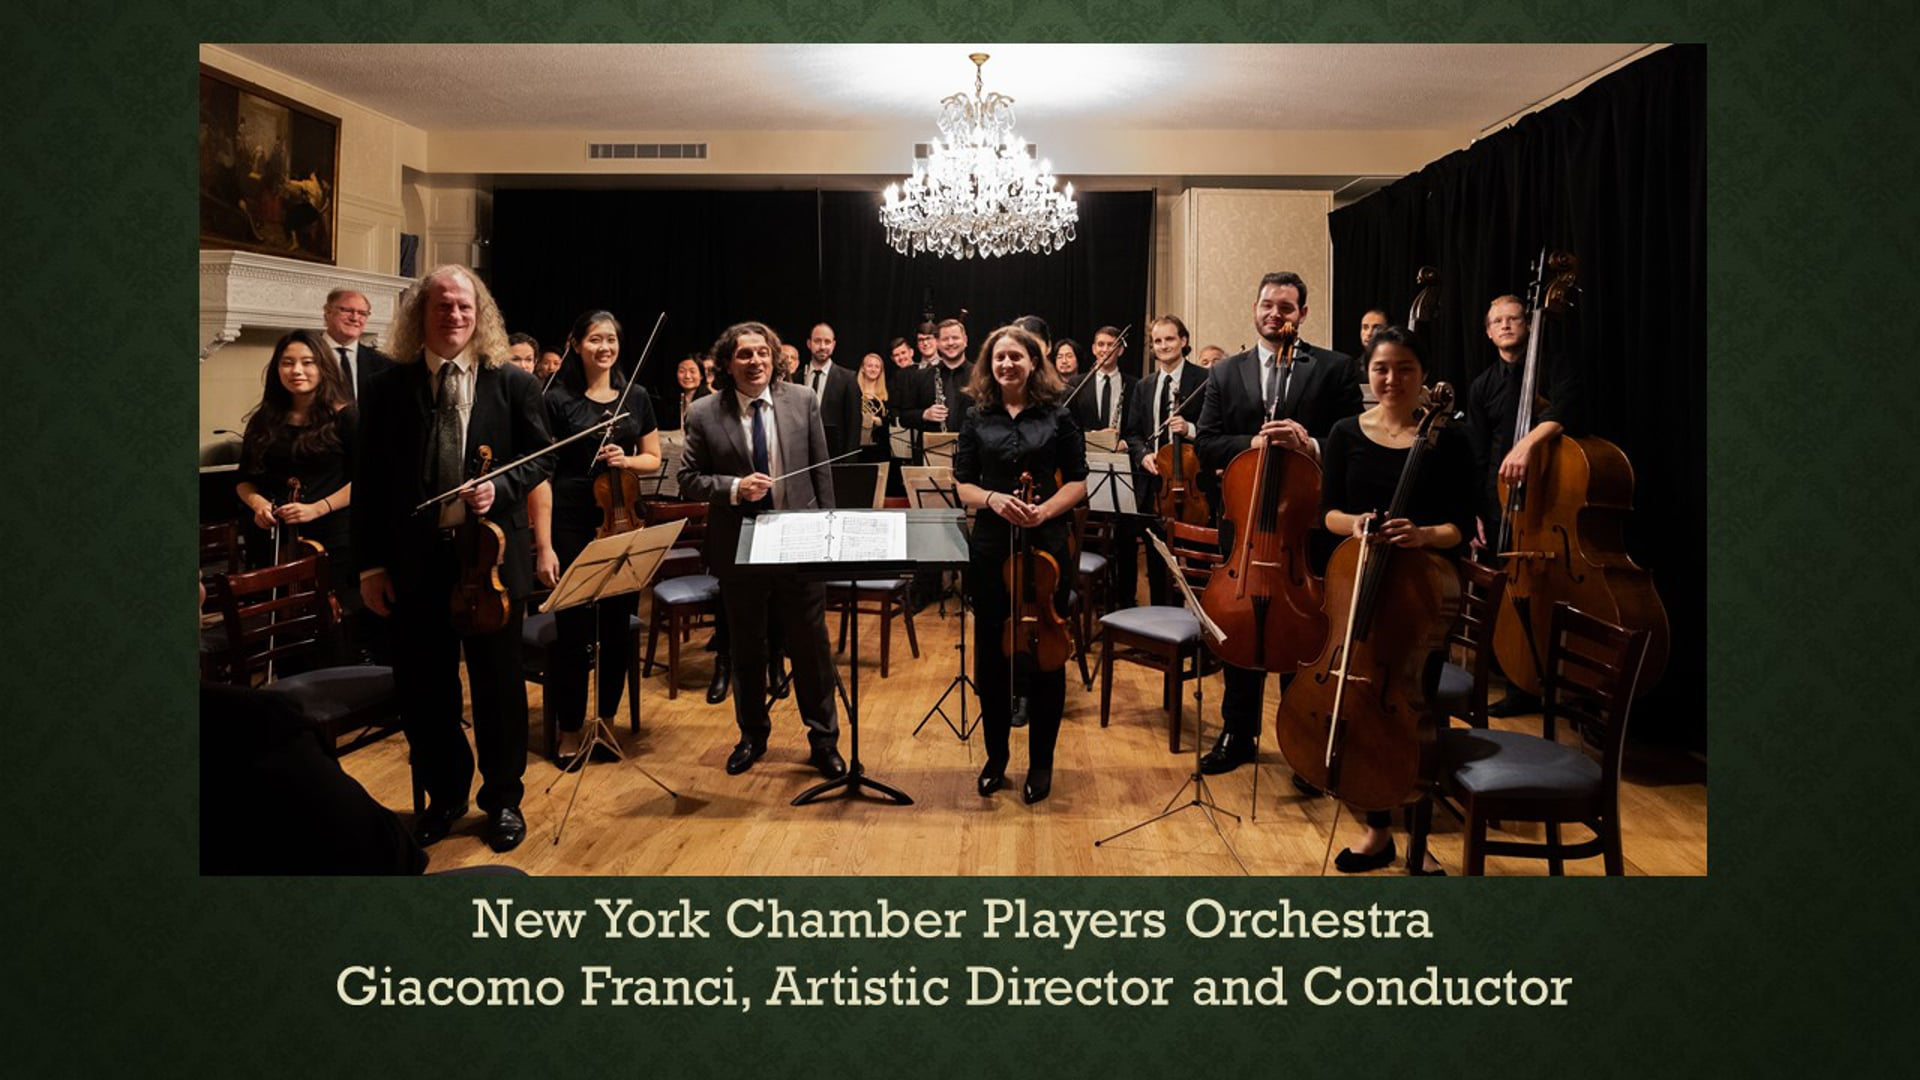 New York Chamber Players Orchestra presents winners of the 10th Annual Concerto Competition